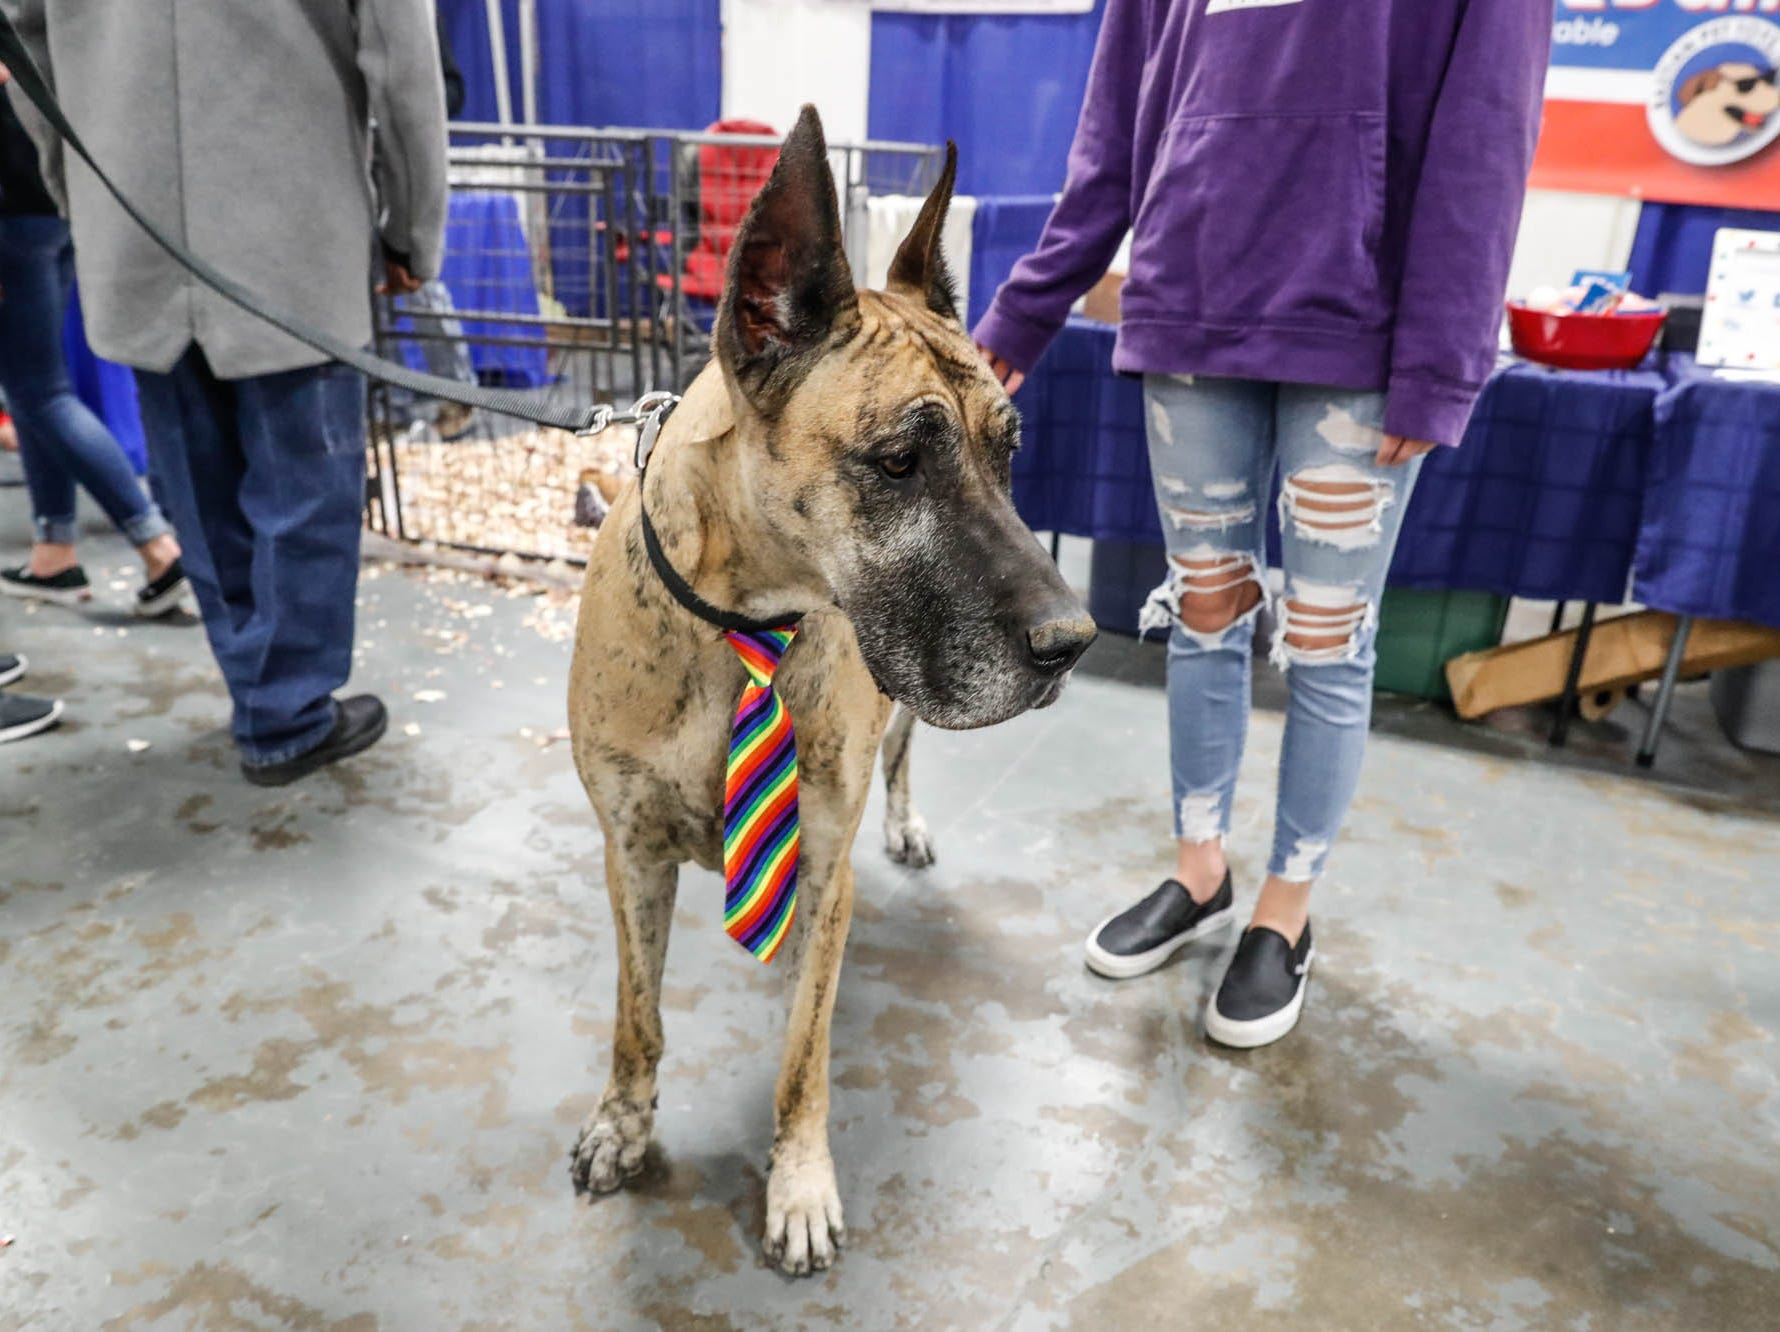 Maia, a great dane, attends the Great Indy Pet Expo, held at the Indiana State Fairgrounds on Sat. Nov. 10, 2018.